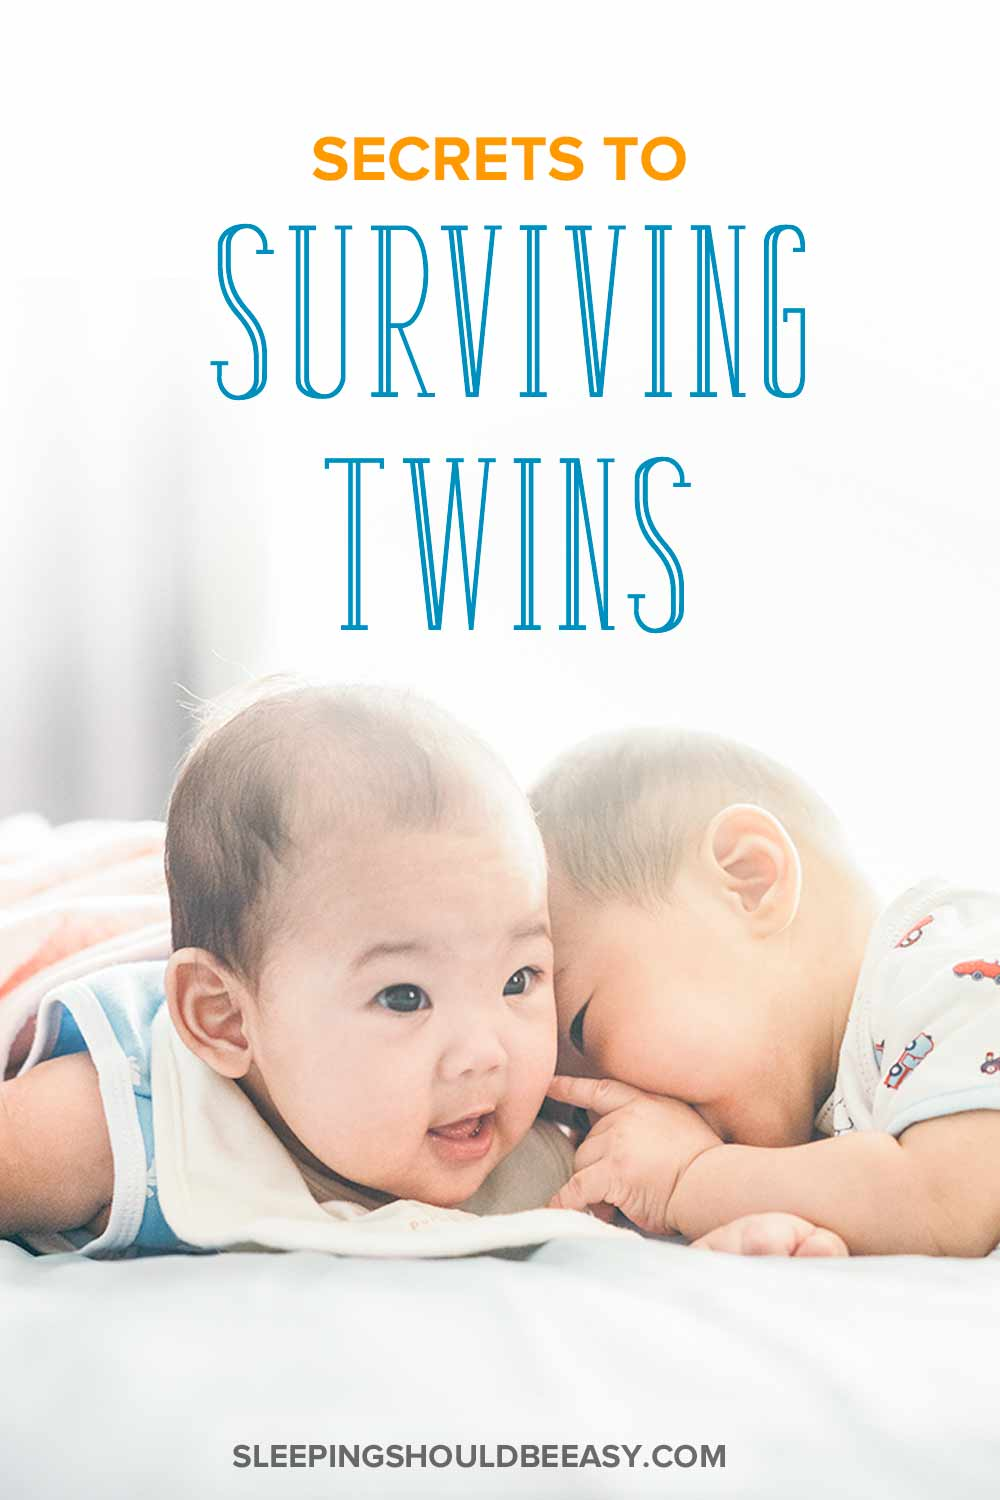 Secrets to surviving twins: Newborn twins doing tummy time on a bed